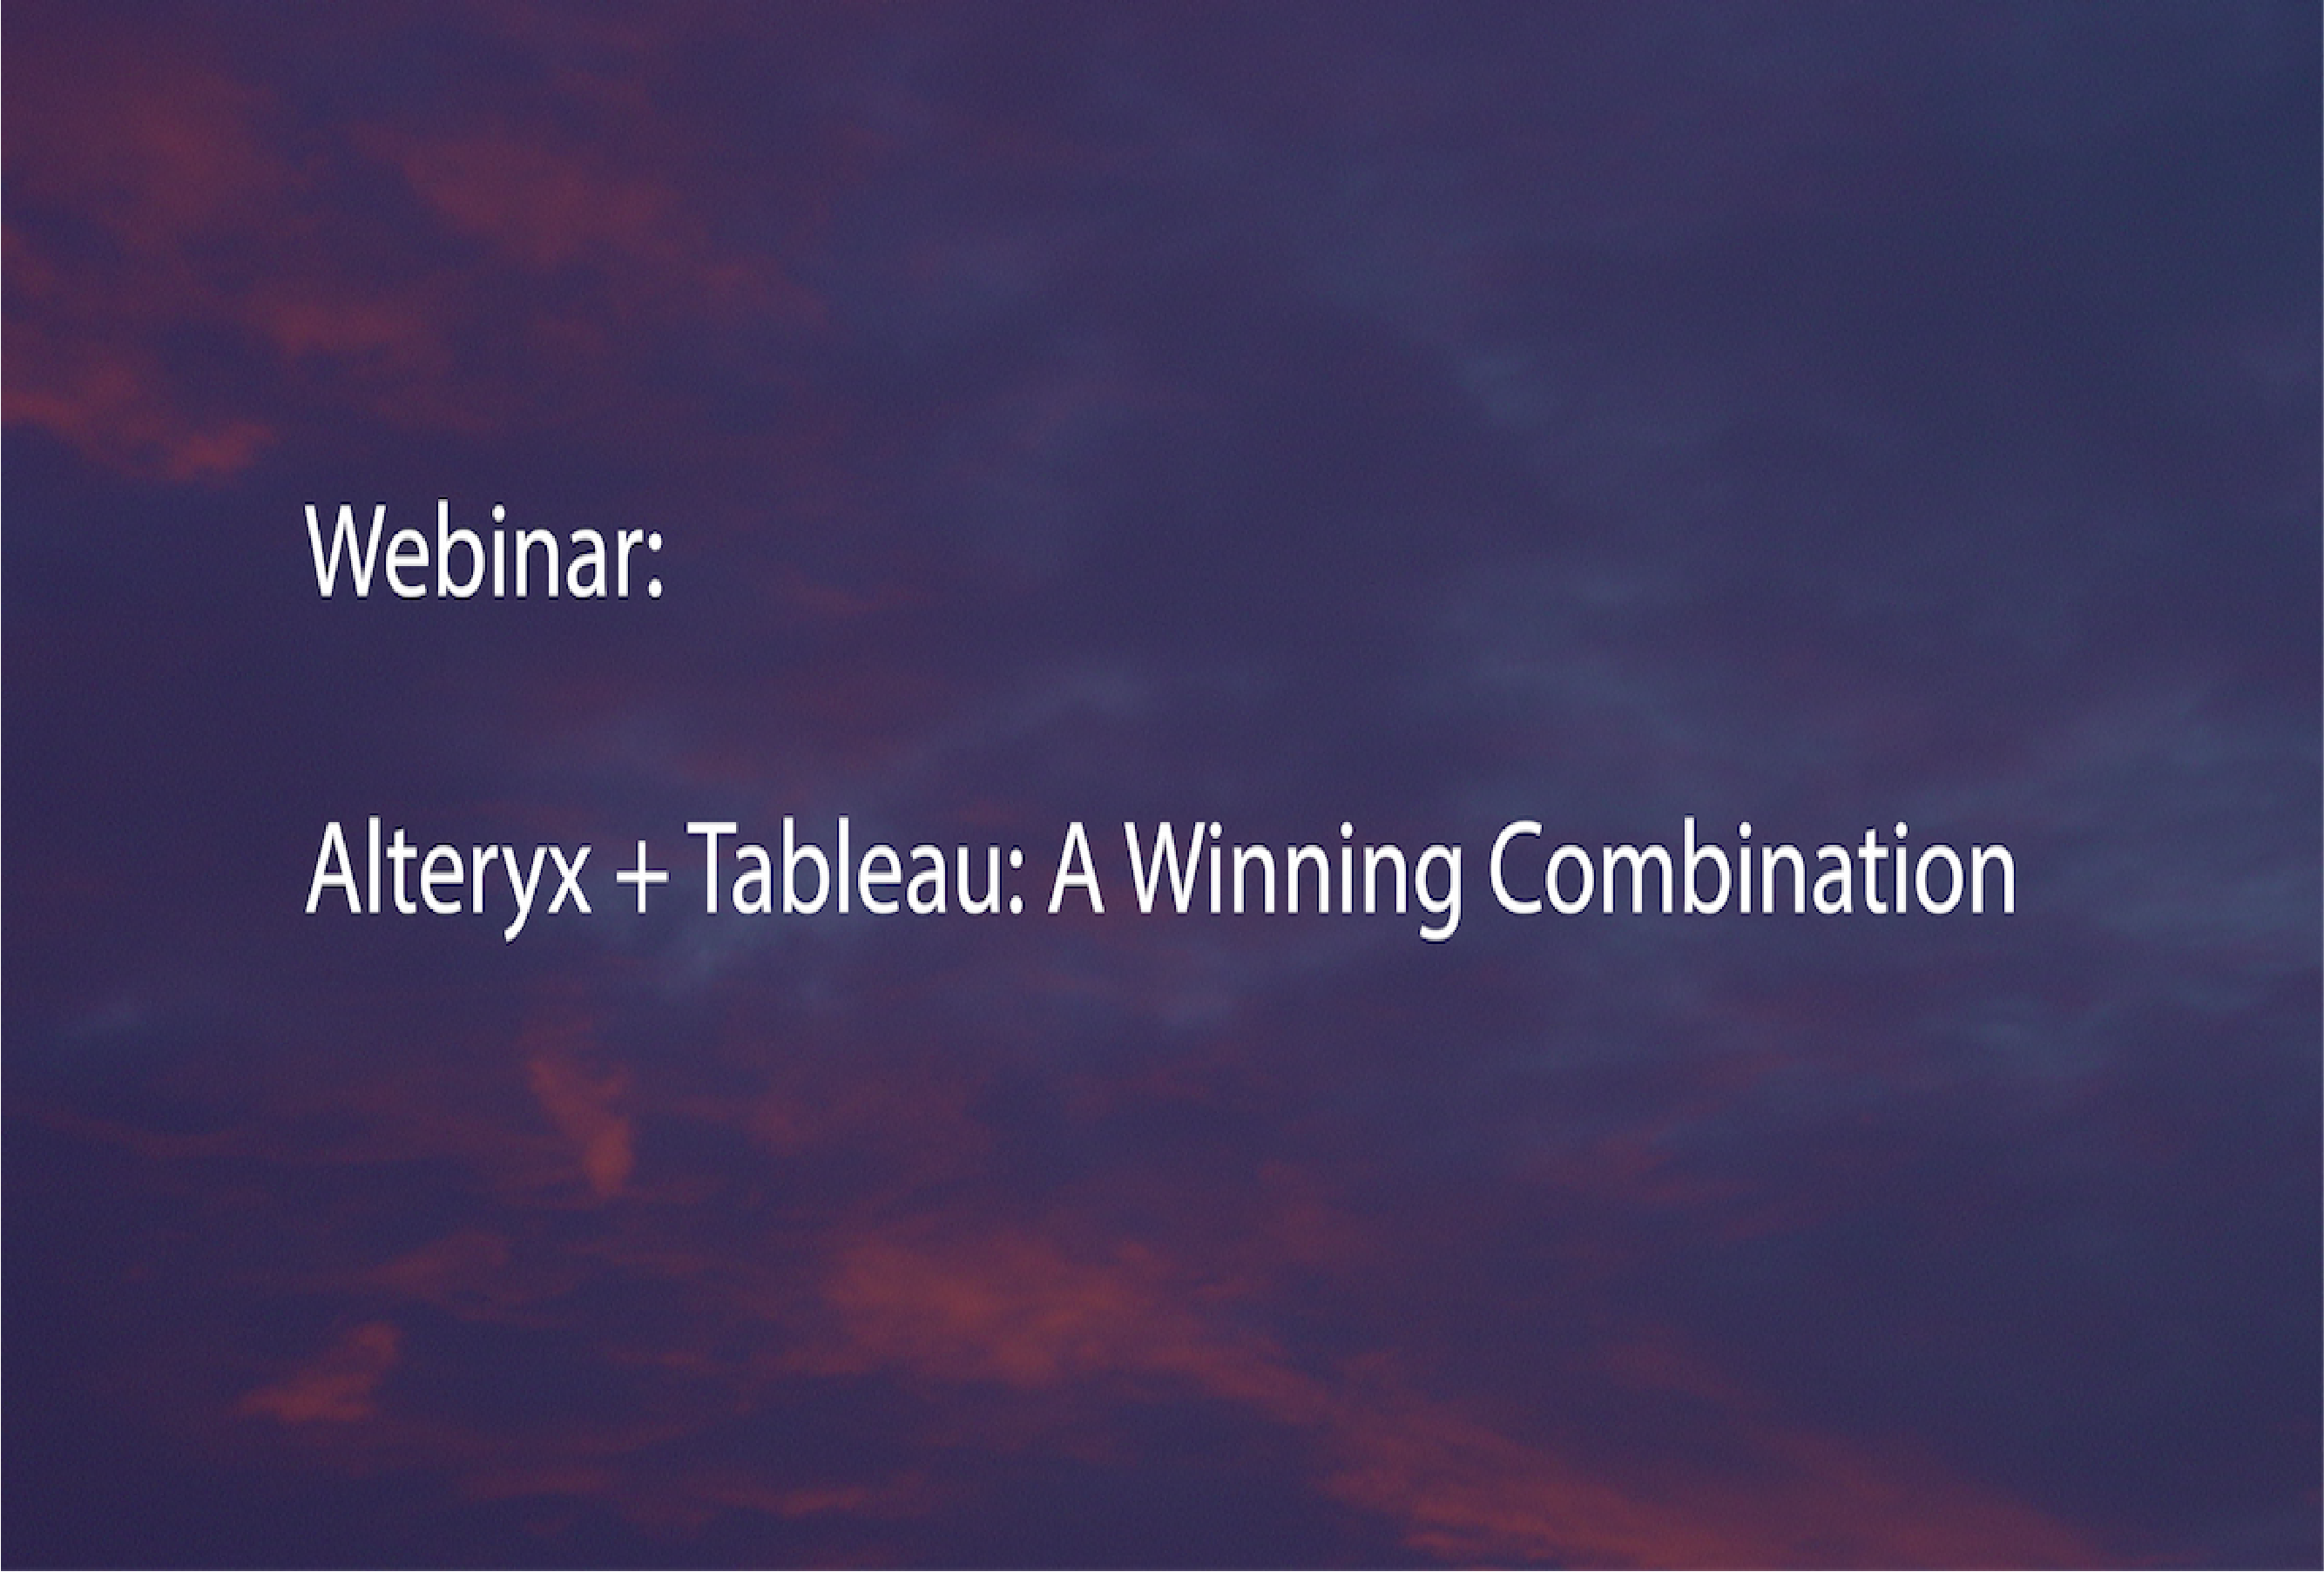 Webinar: Alteryx + Tableau: A Winning Combination